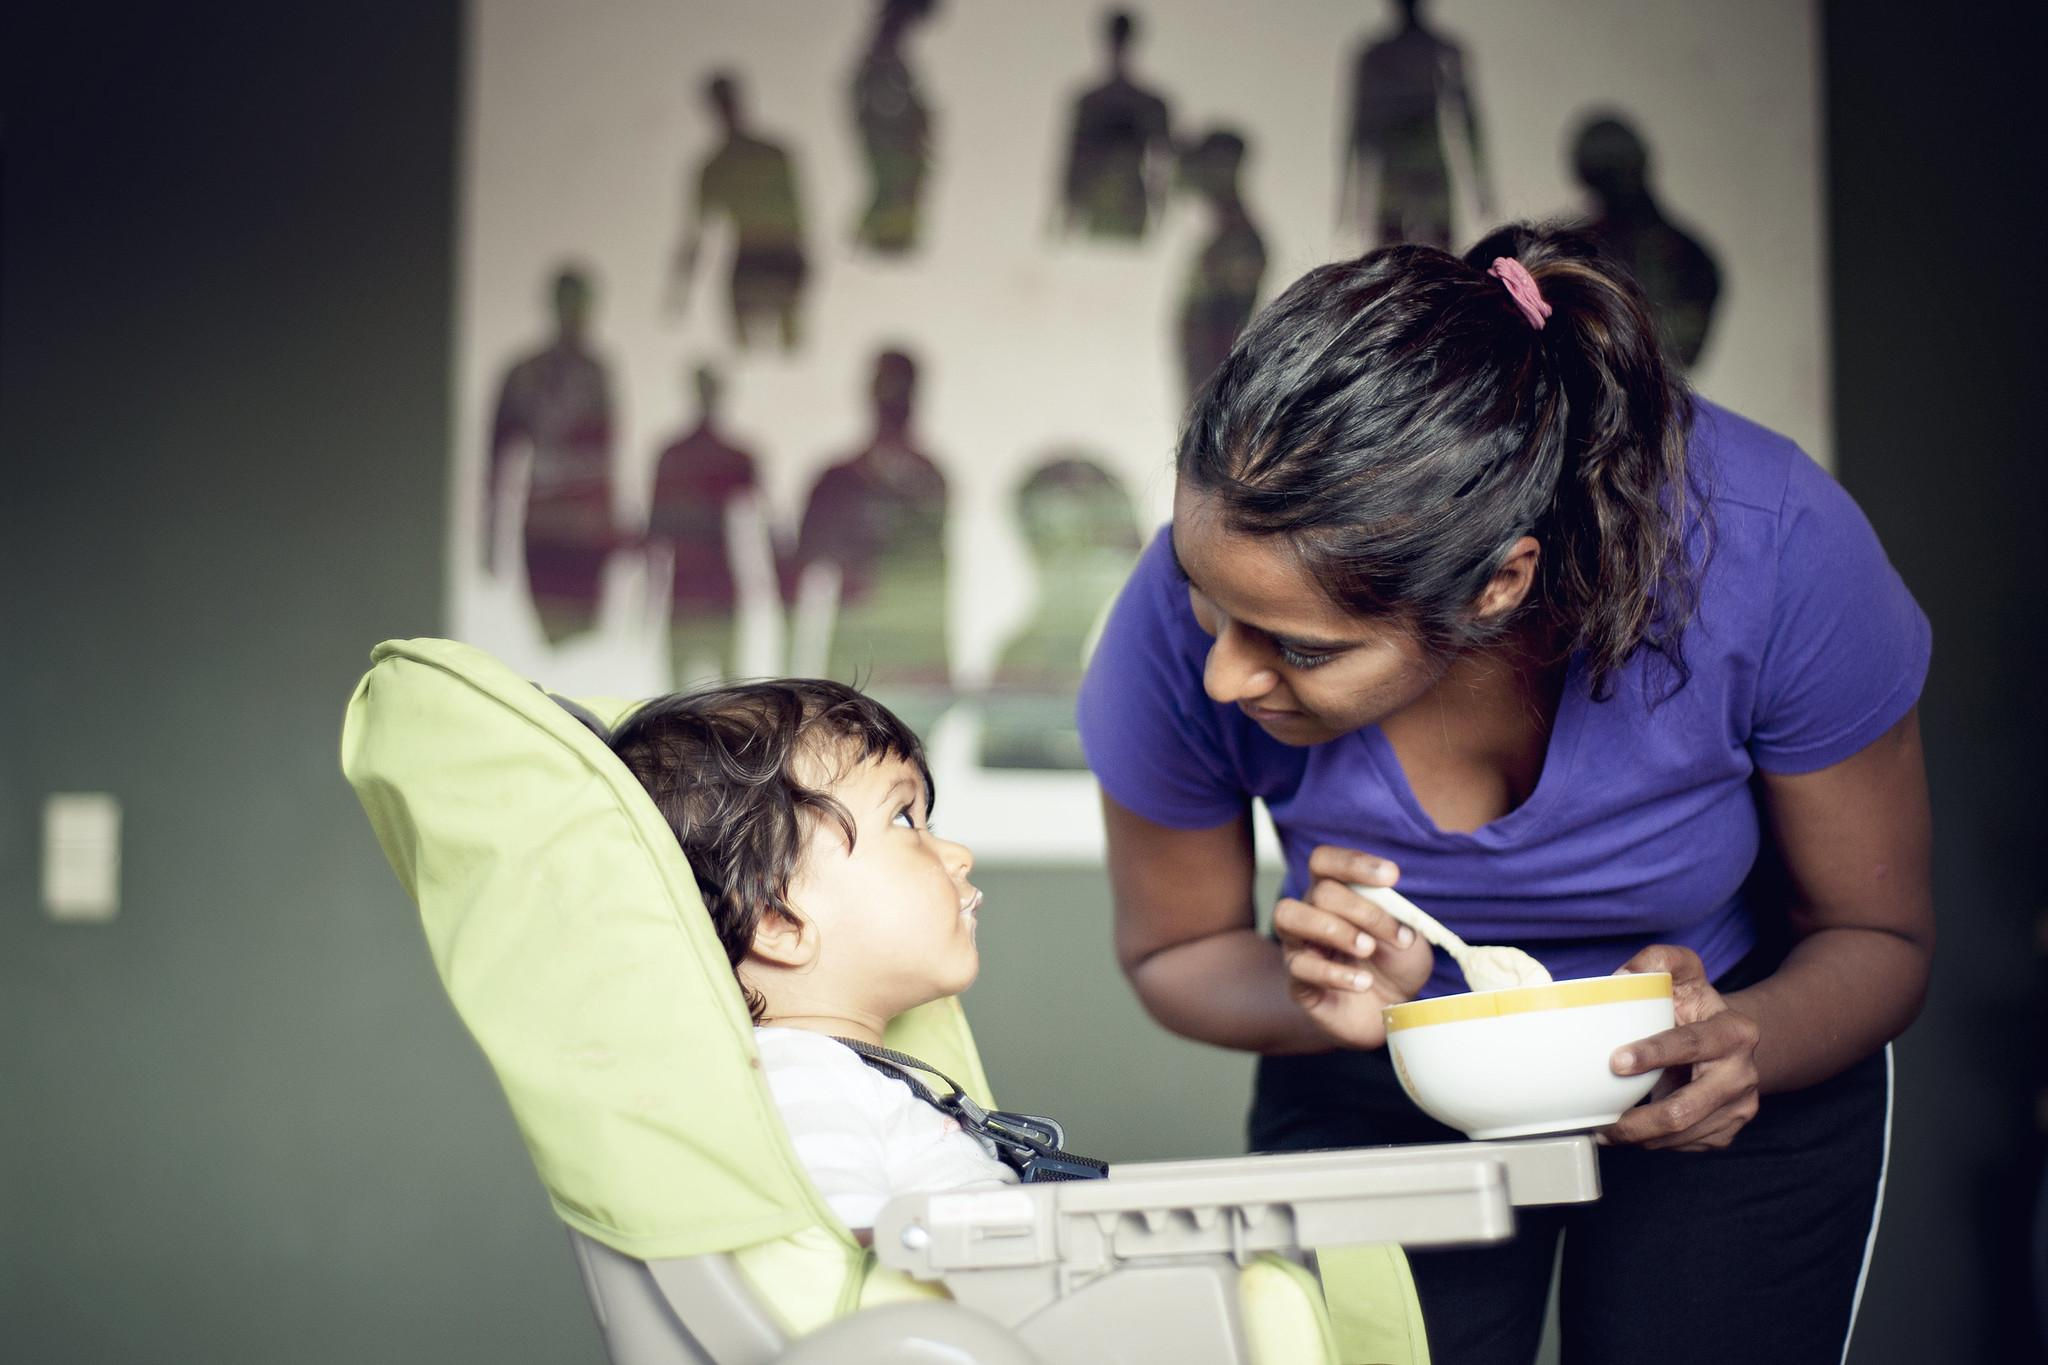 A mother with brown skin tone makes eye contact with a baby in a high chair. The mother is holding a bowl of baby food and a spoon and looks like she's pausing before offering another bite of food to the baby.